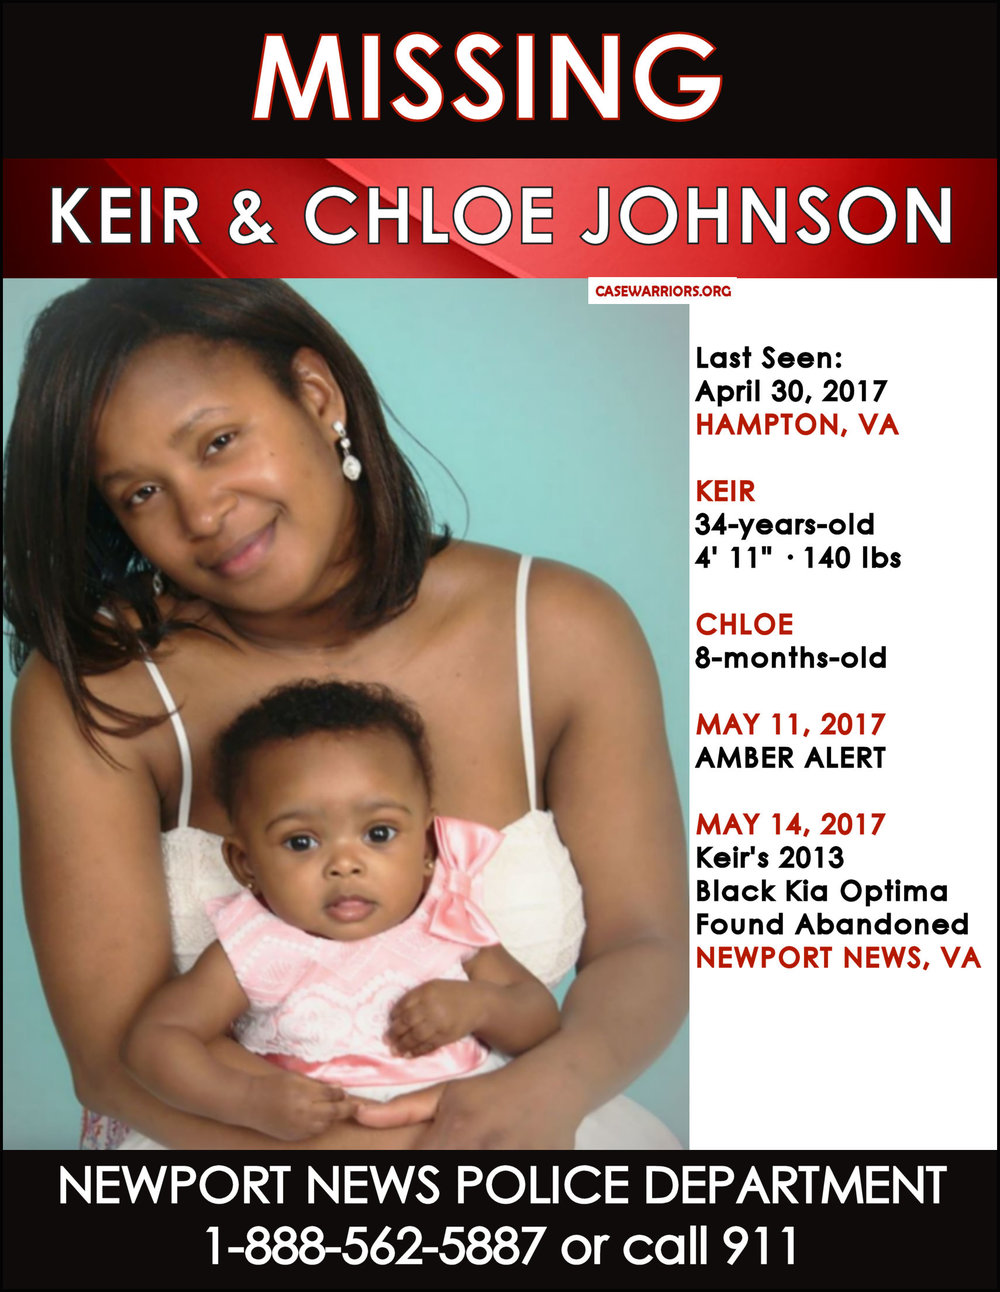 KEIR & CHLOE JOHNSON